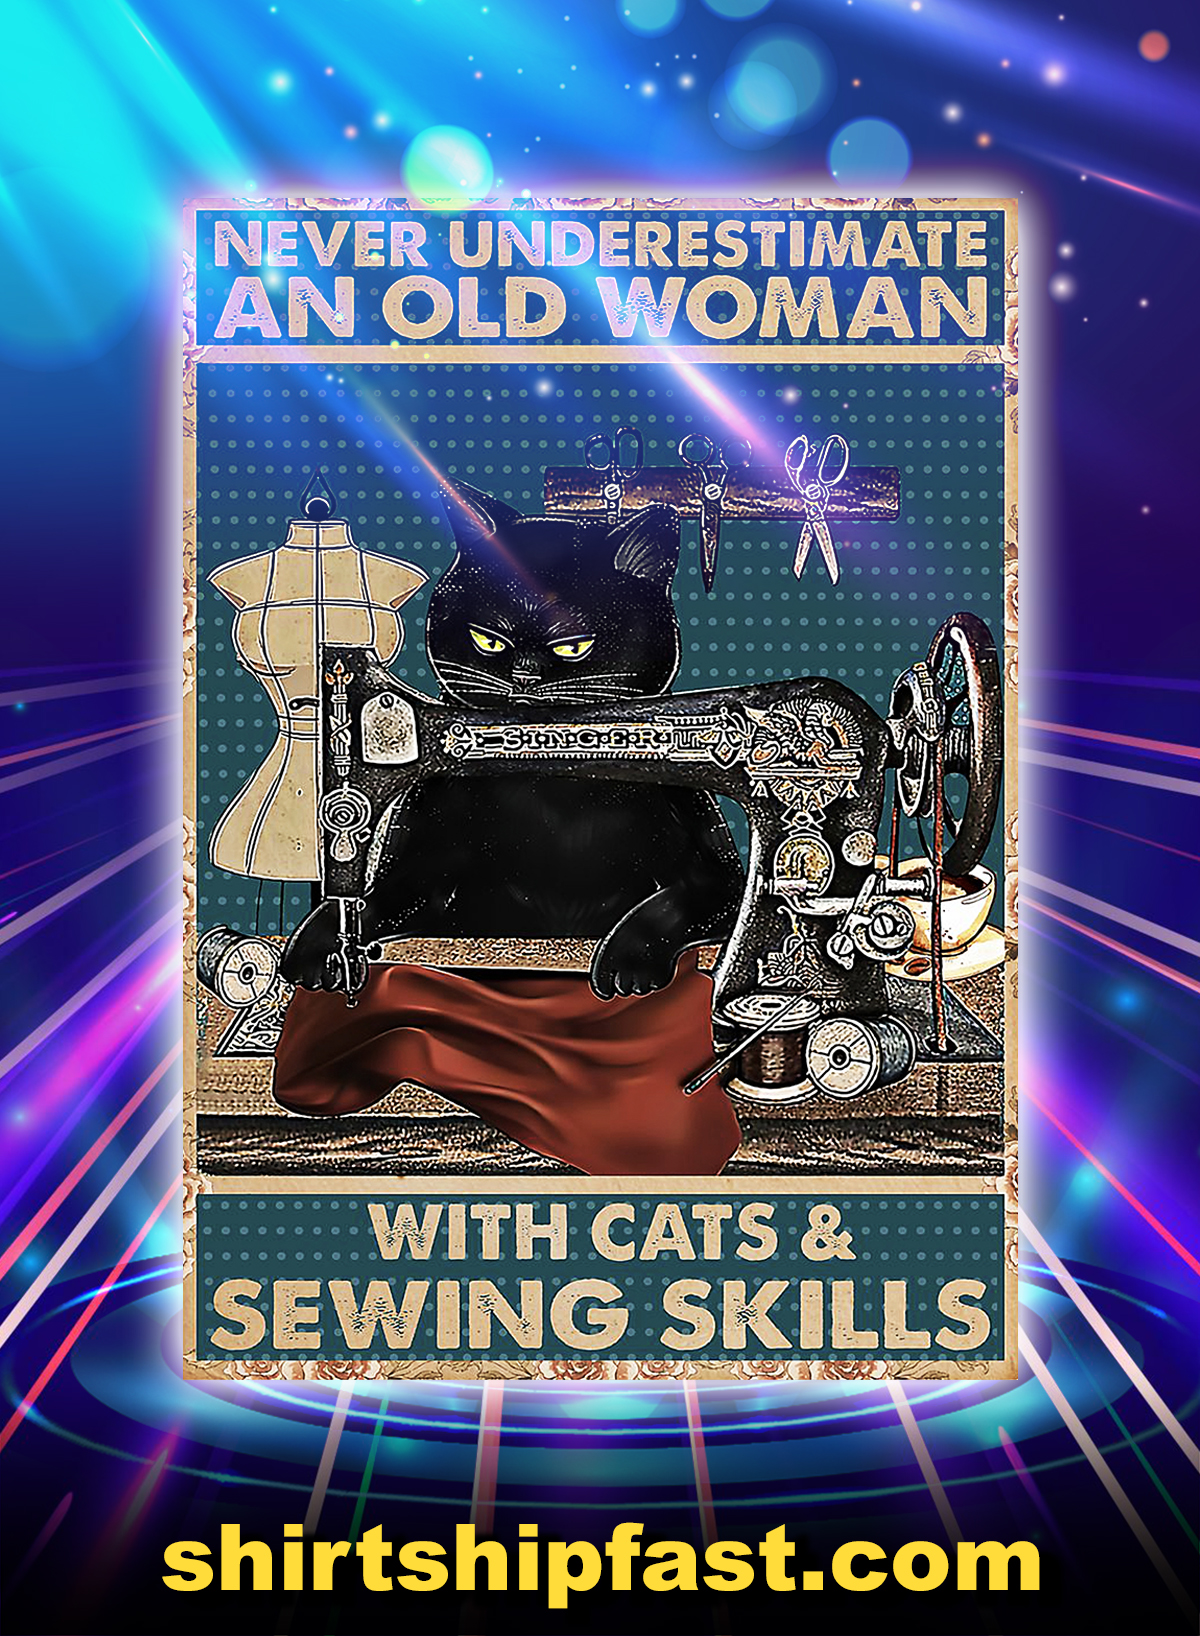 Never underestimate an old woman with cats and sewing skills poster - A4